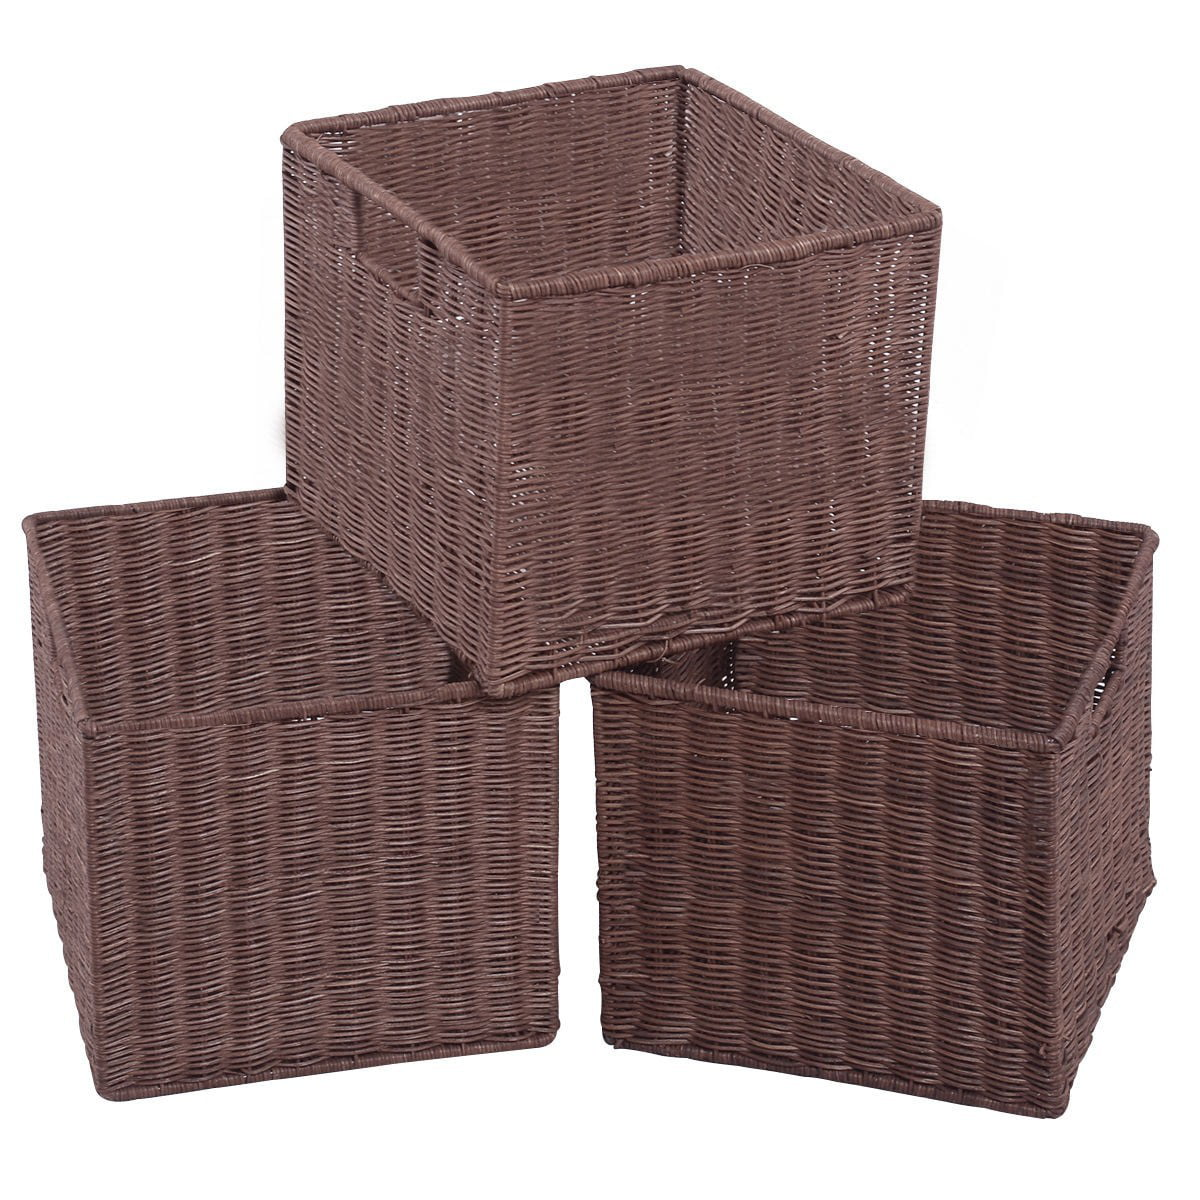 Set of 3 Cube Wicker Rattan Storage Baskets by